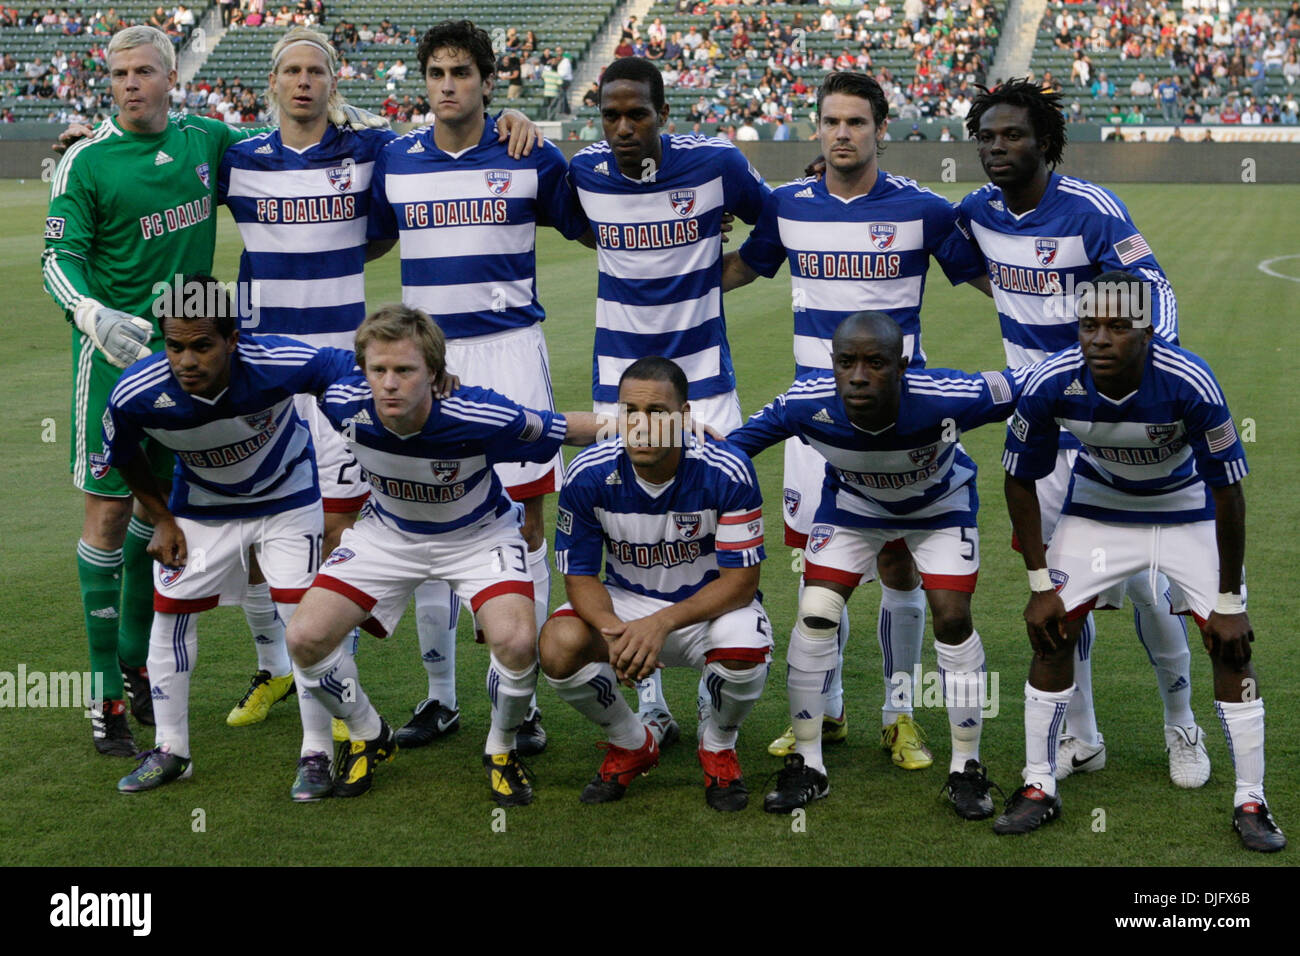 33f4a3be4 26 June 2010  FC Dallas starting 11 pose for a team portrait before the Chivas  USA vs FC Dallas game at the Home Depot Center in Carson